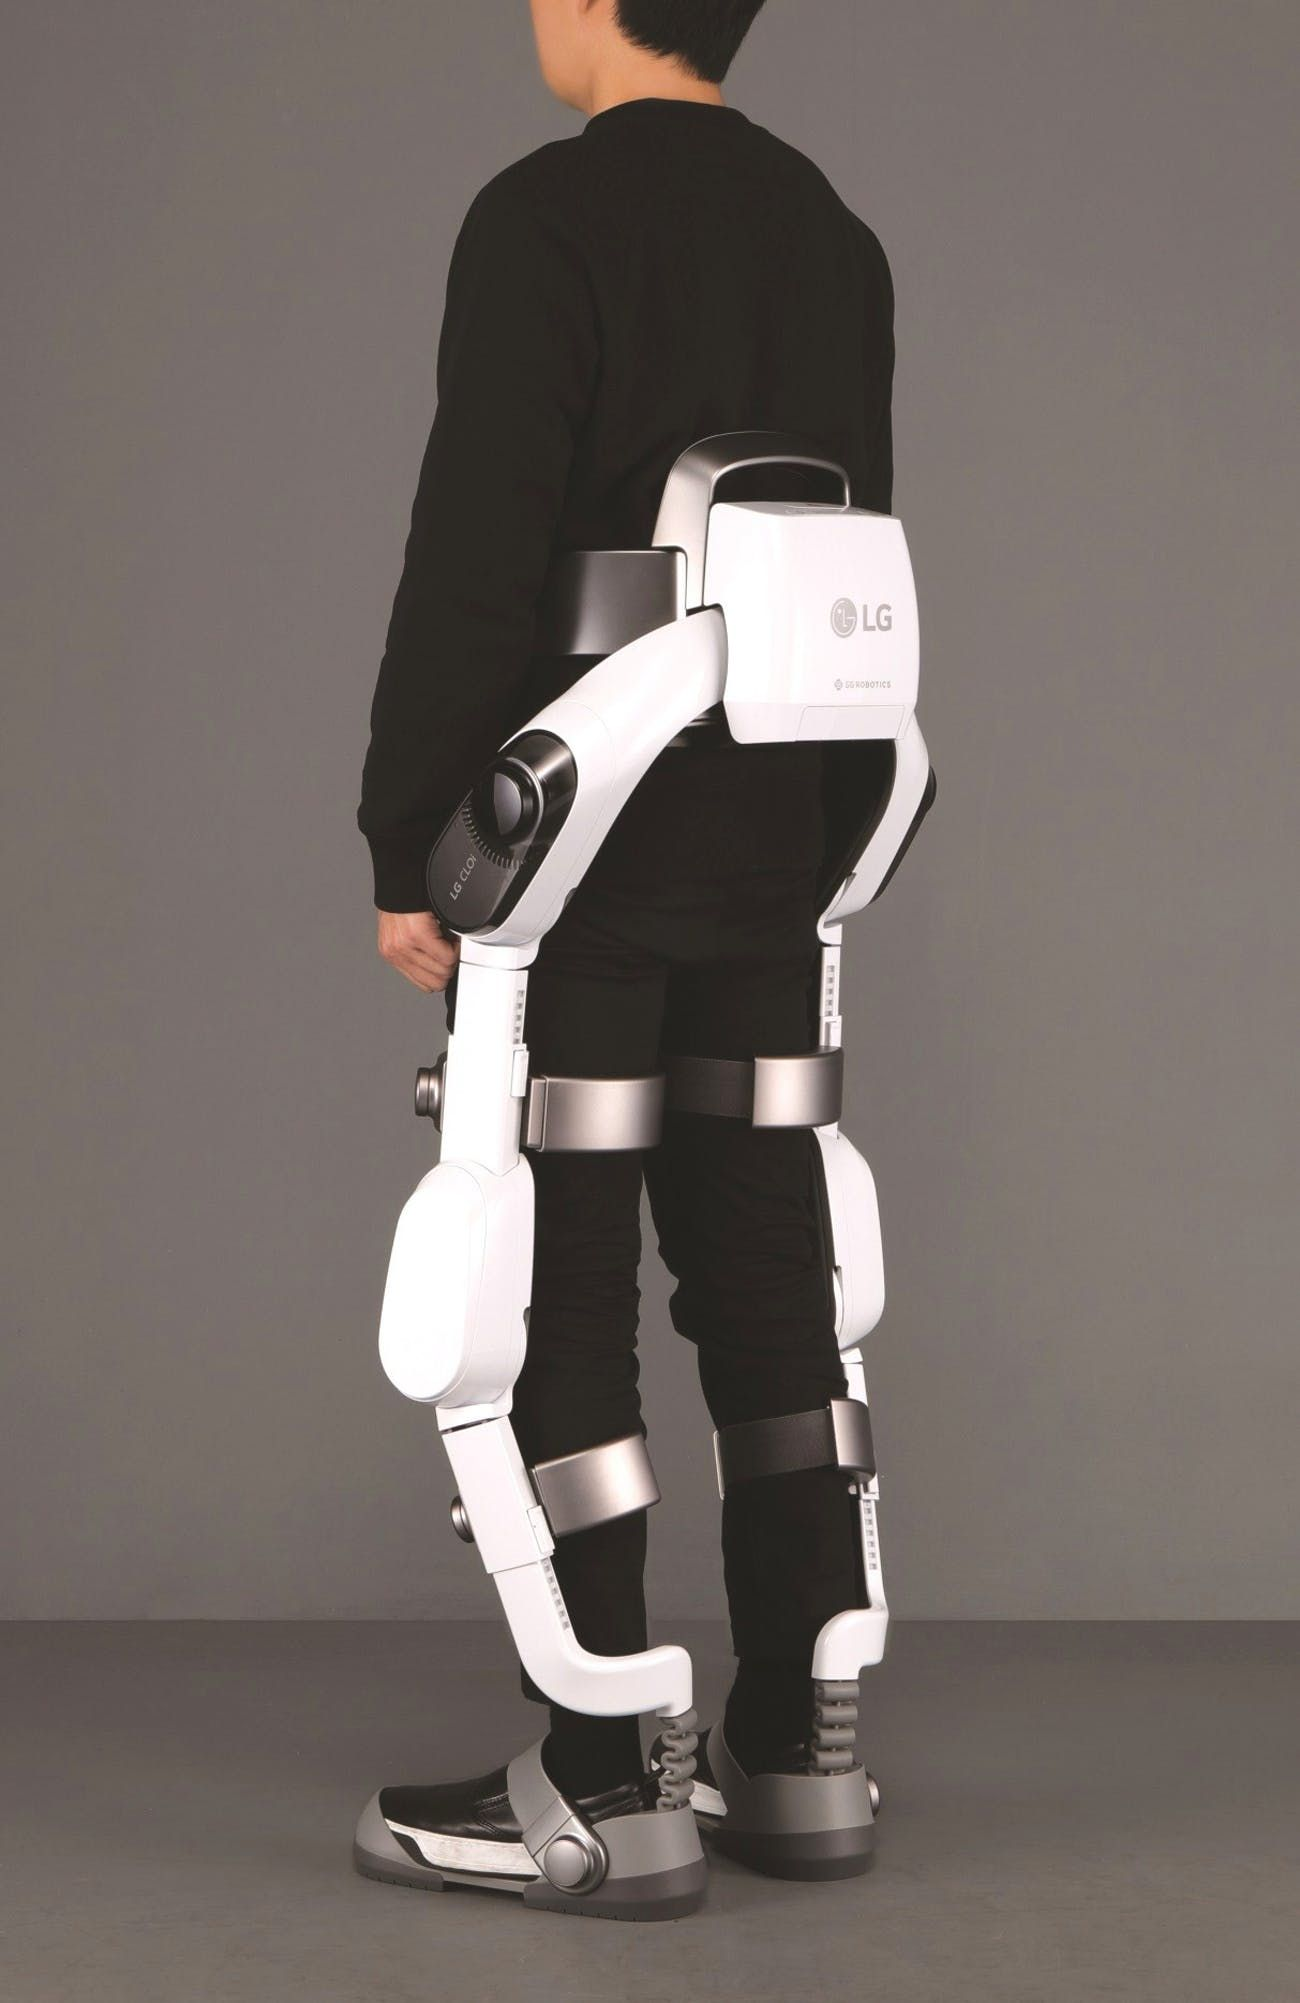 Back view of LG SuitBot Wearable robots, Wearable